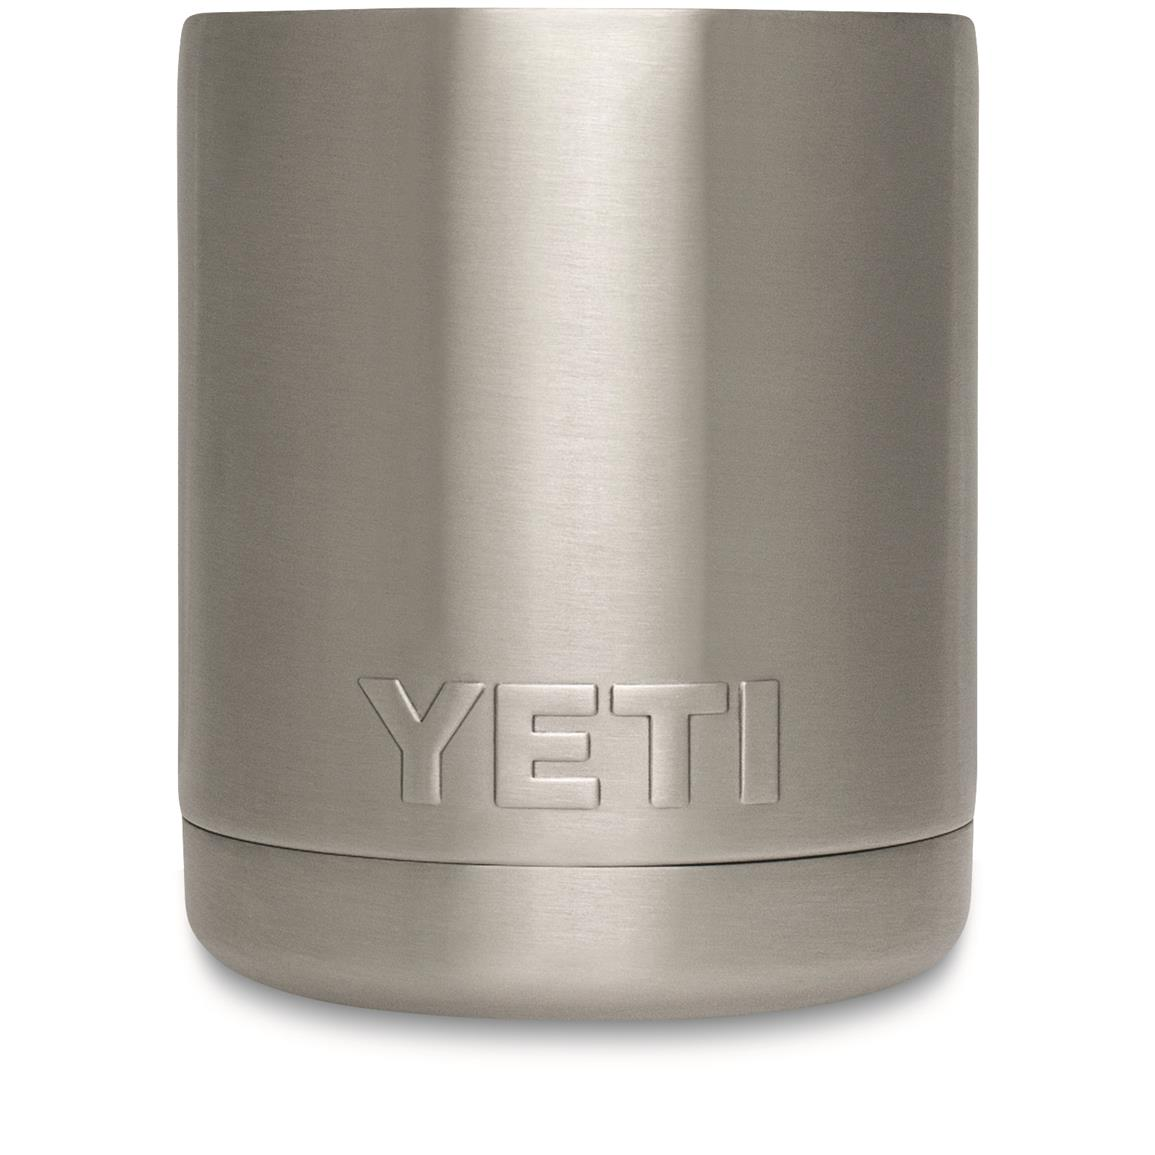 YETI Rambler Stainless Steel Tumble, 10 oz. Lowball